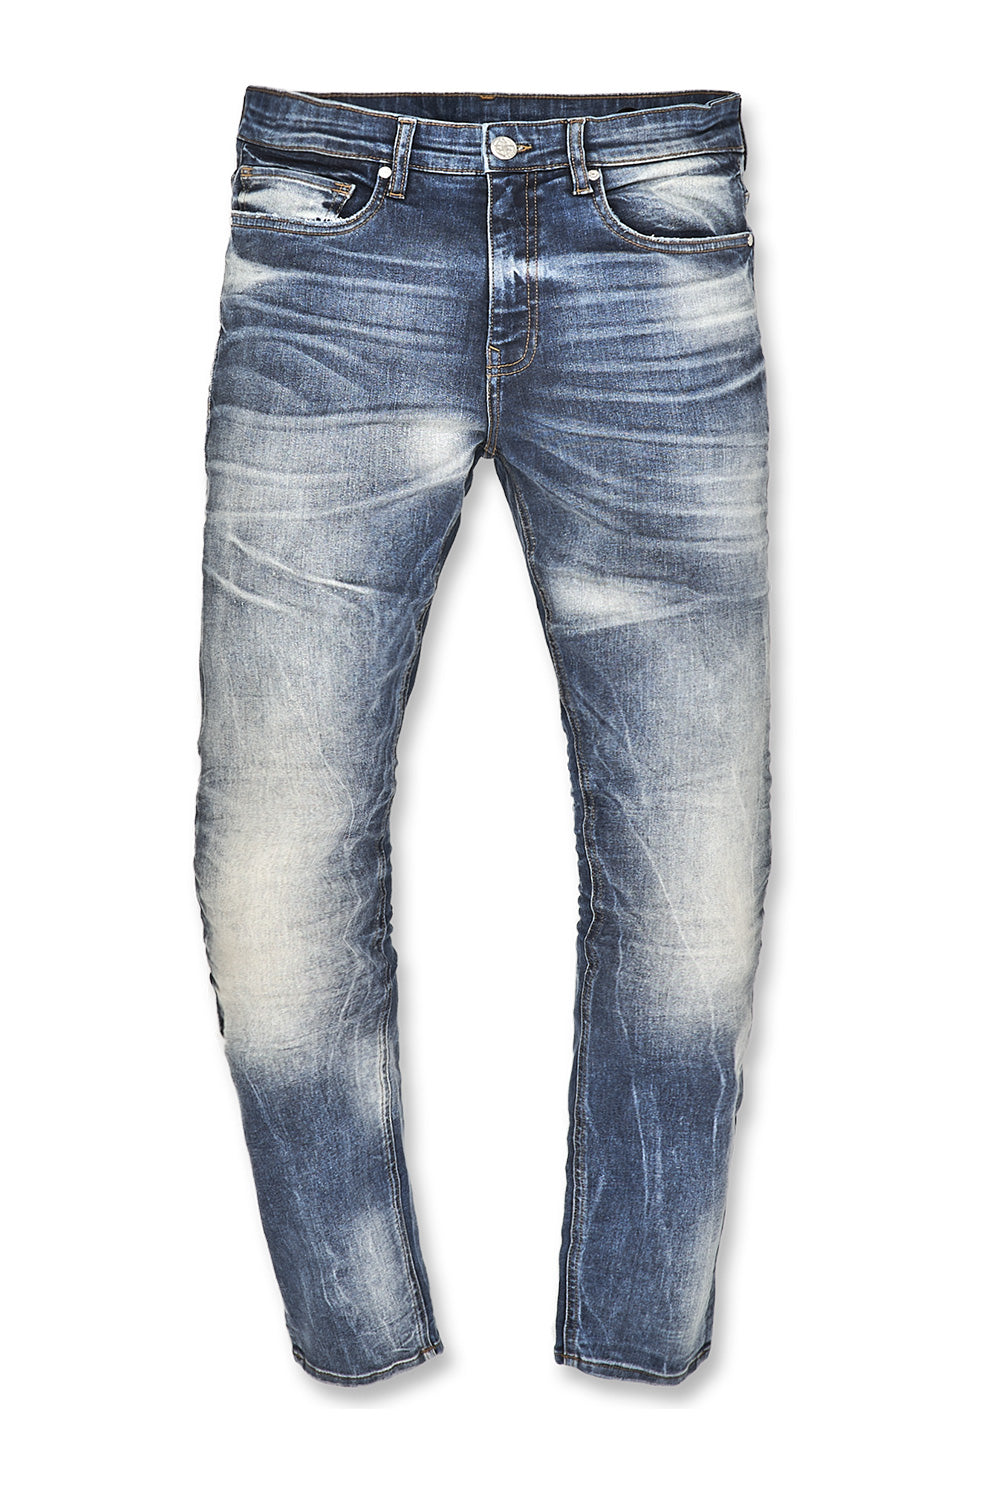 Sean - Vienna Denim (Aged Wash)